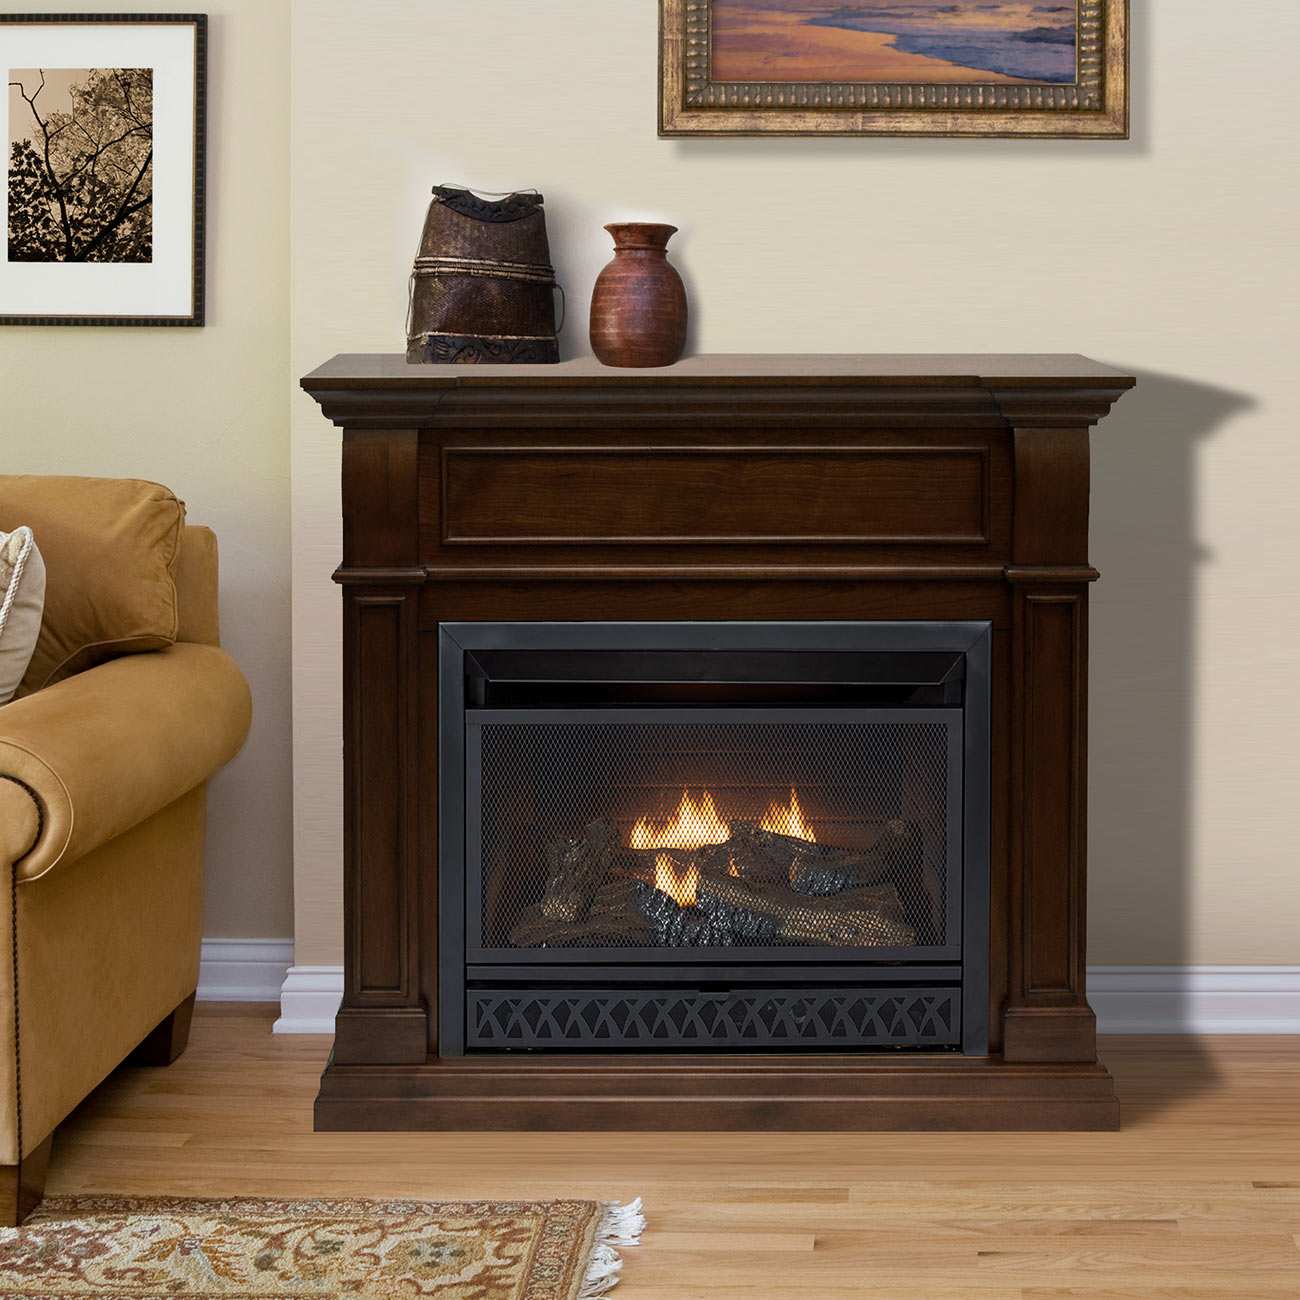 procom ventless dual fuel corner fireplace system walnut finish